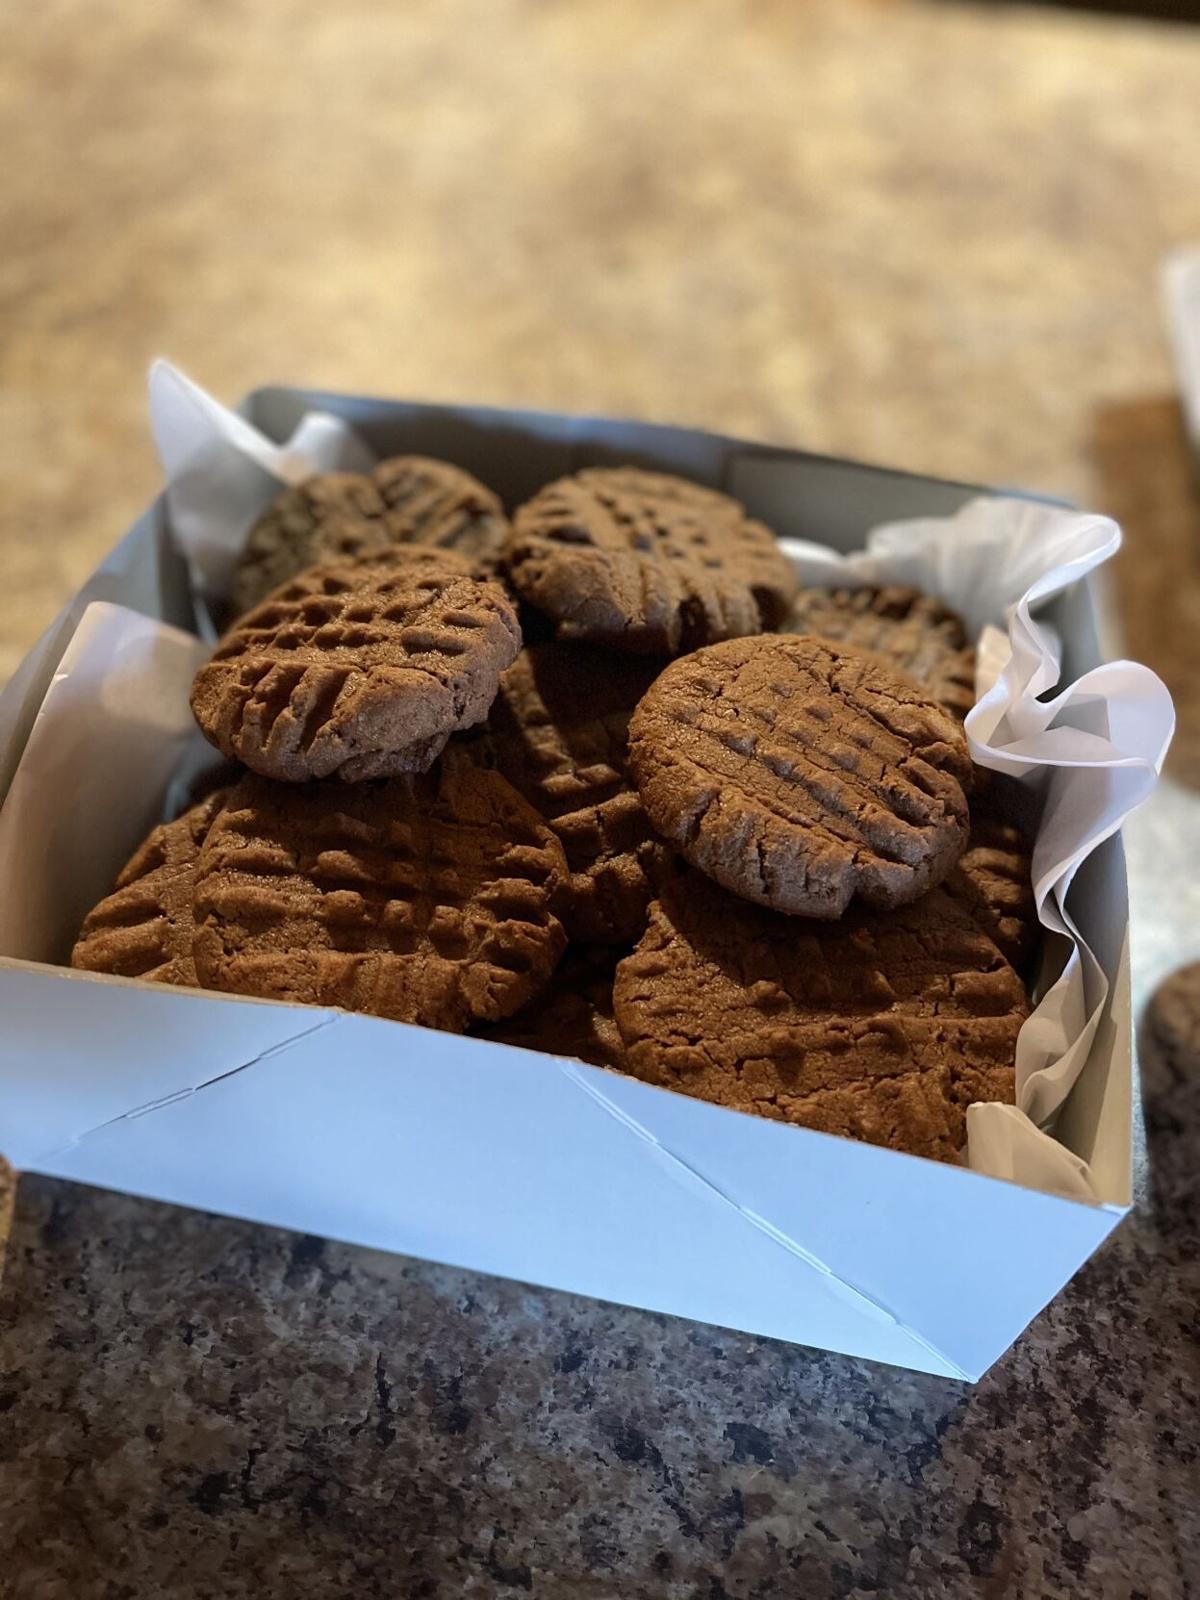 Choco-Peanut Butter Cookies